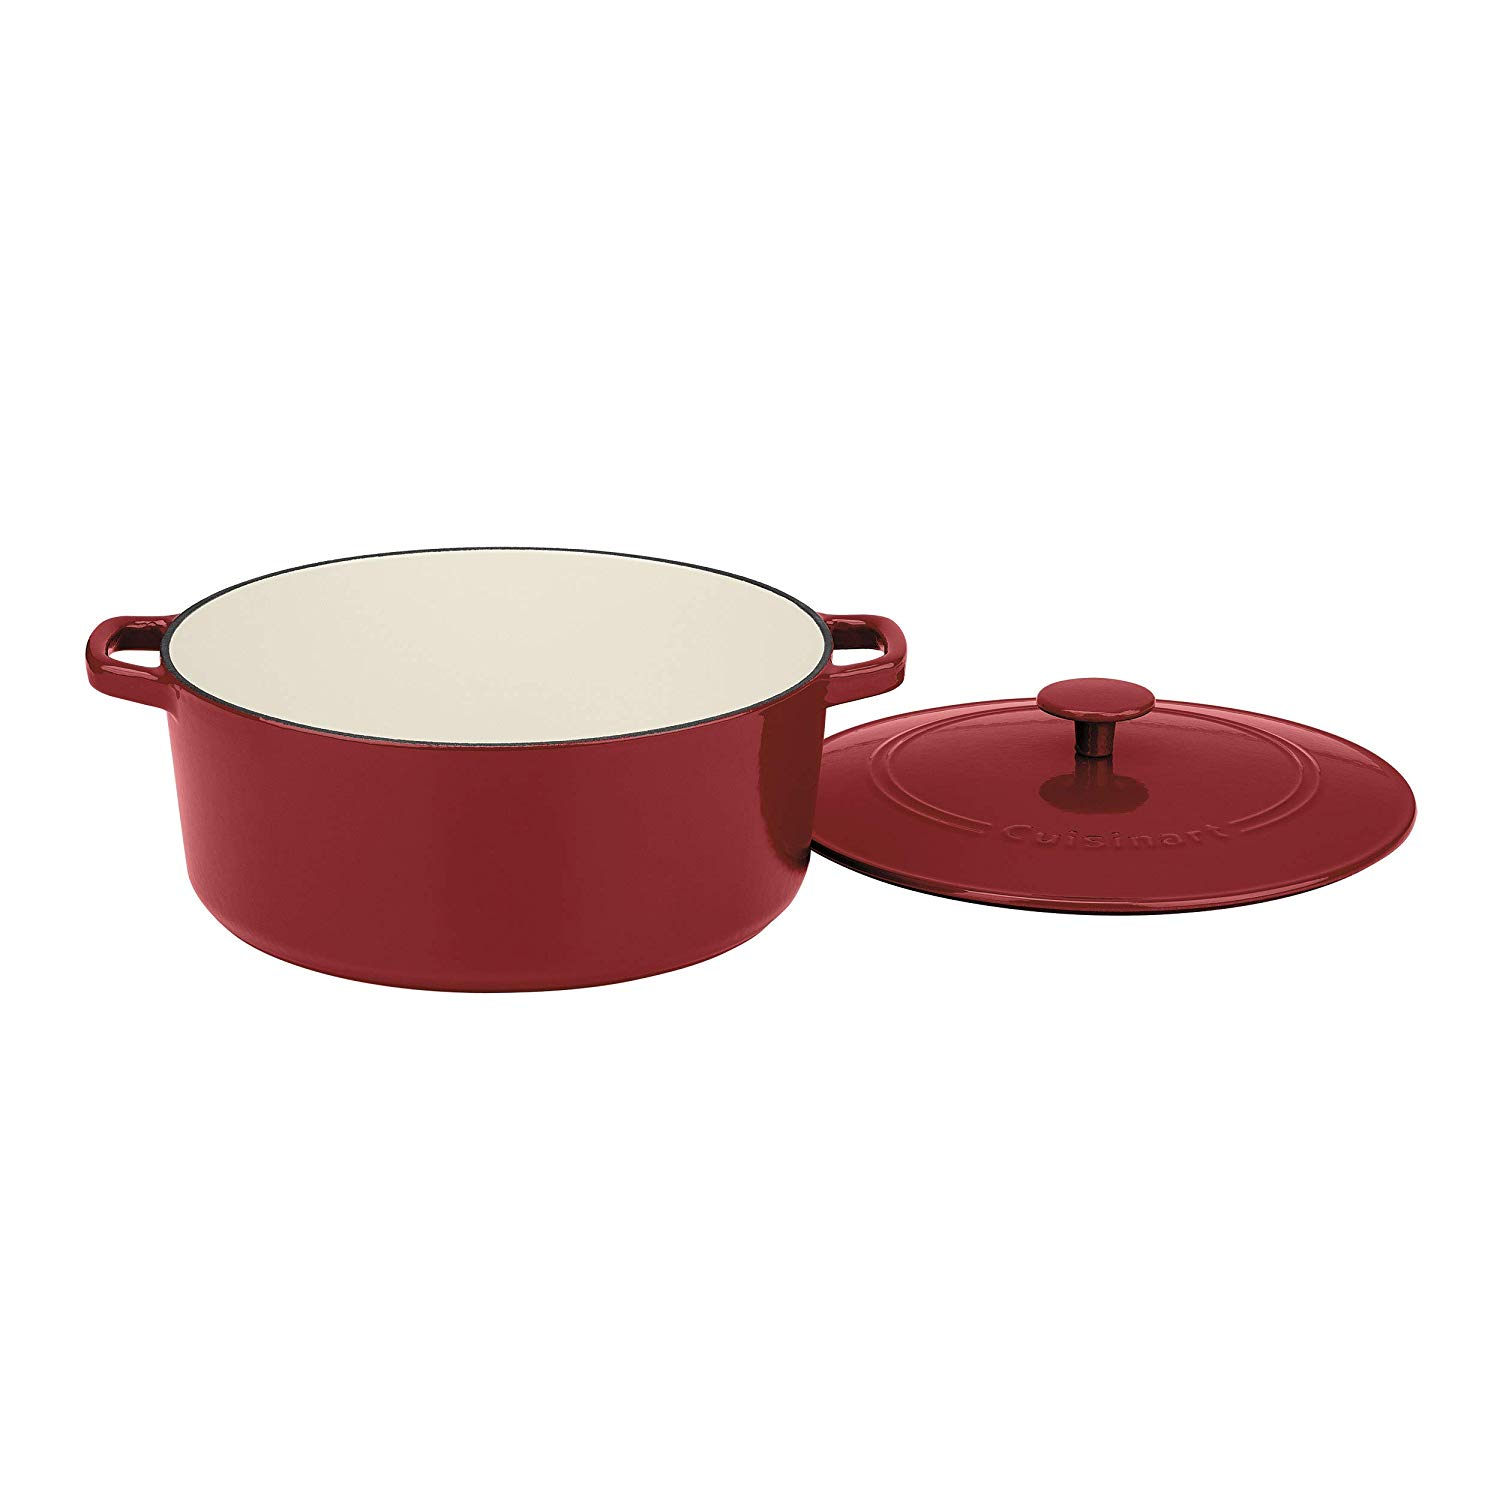 Cuisinart Chef's Classic Enameled Cast Iron Cookware Dutch Oven